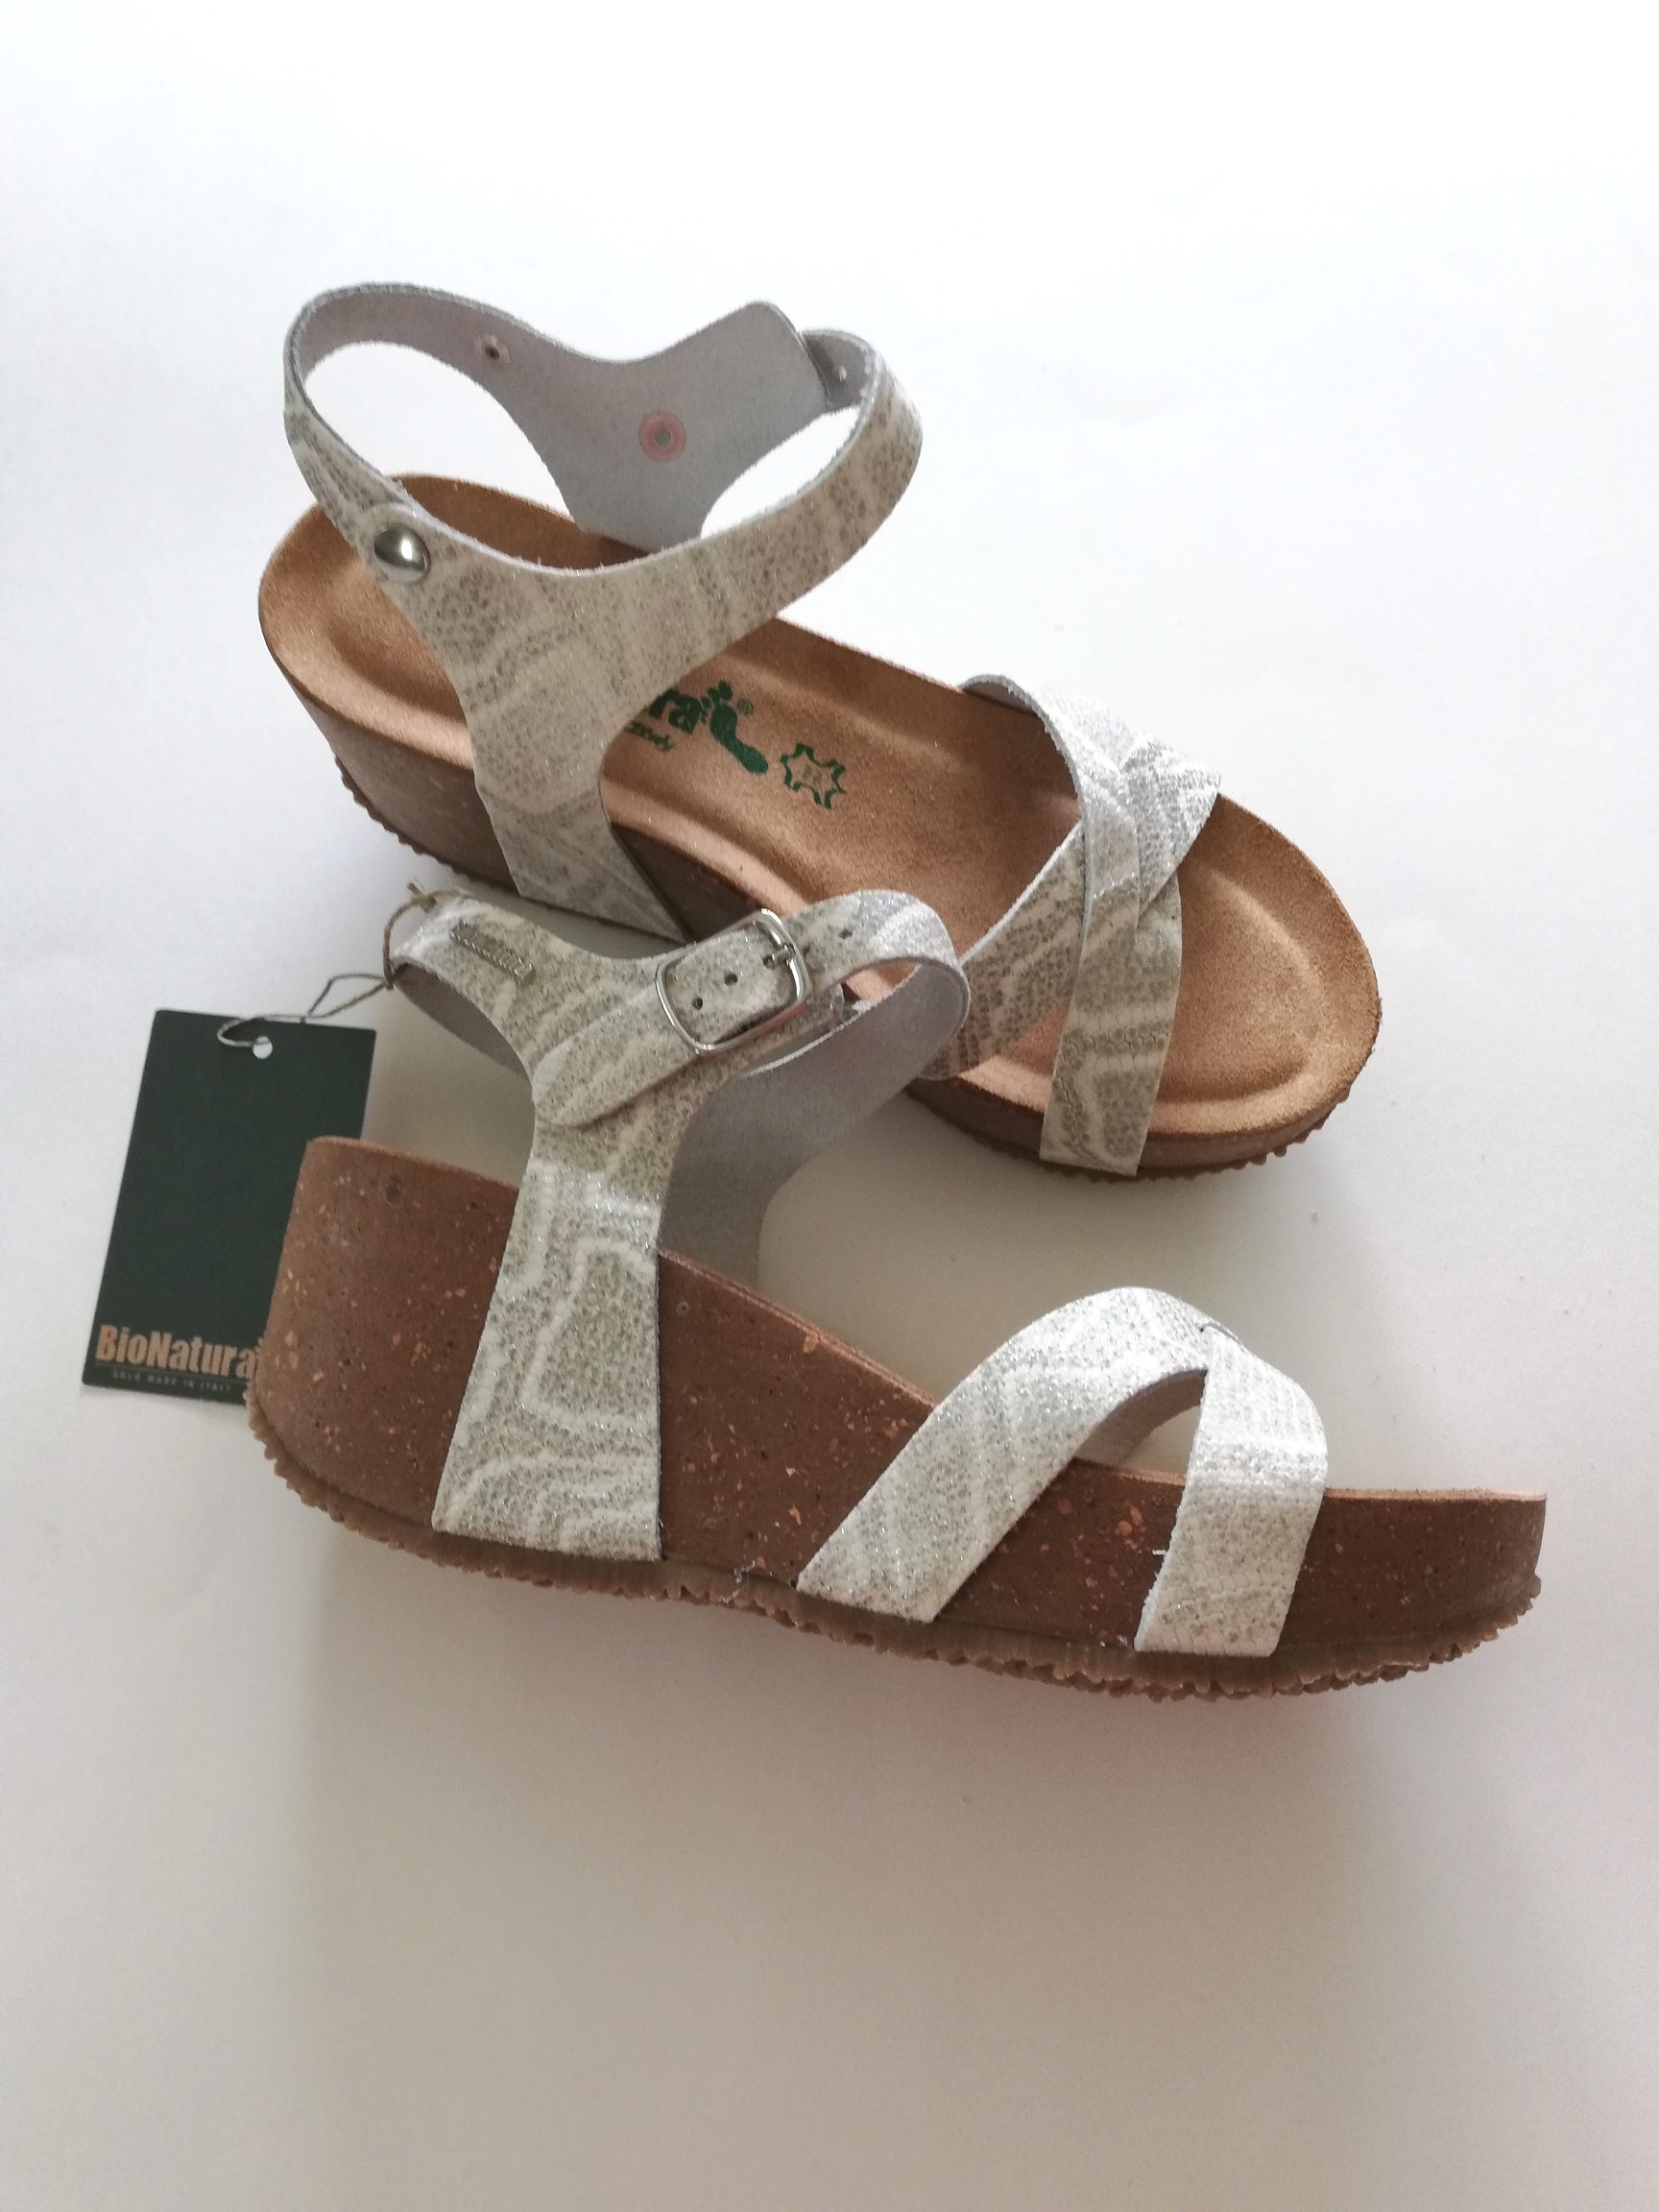 BioNatura Sandal Wedge White